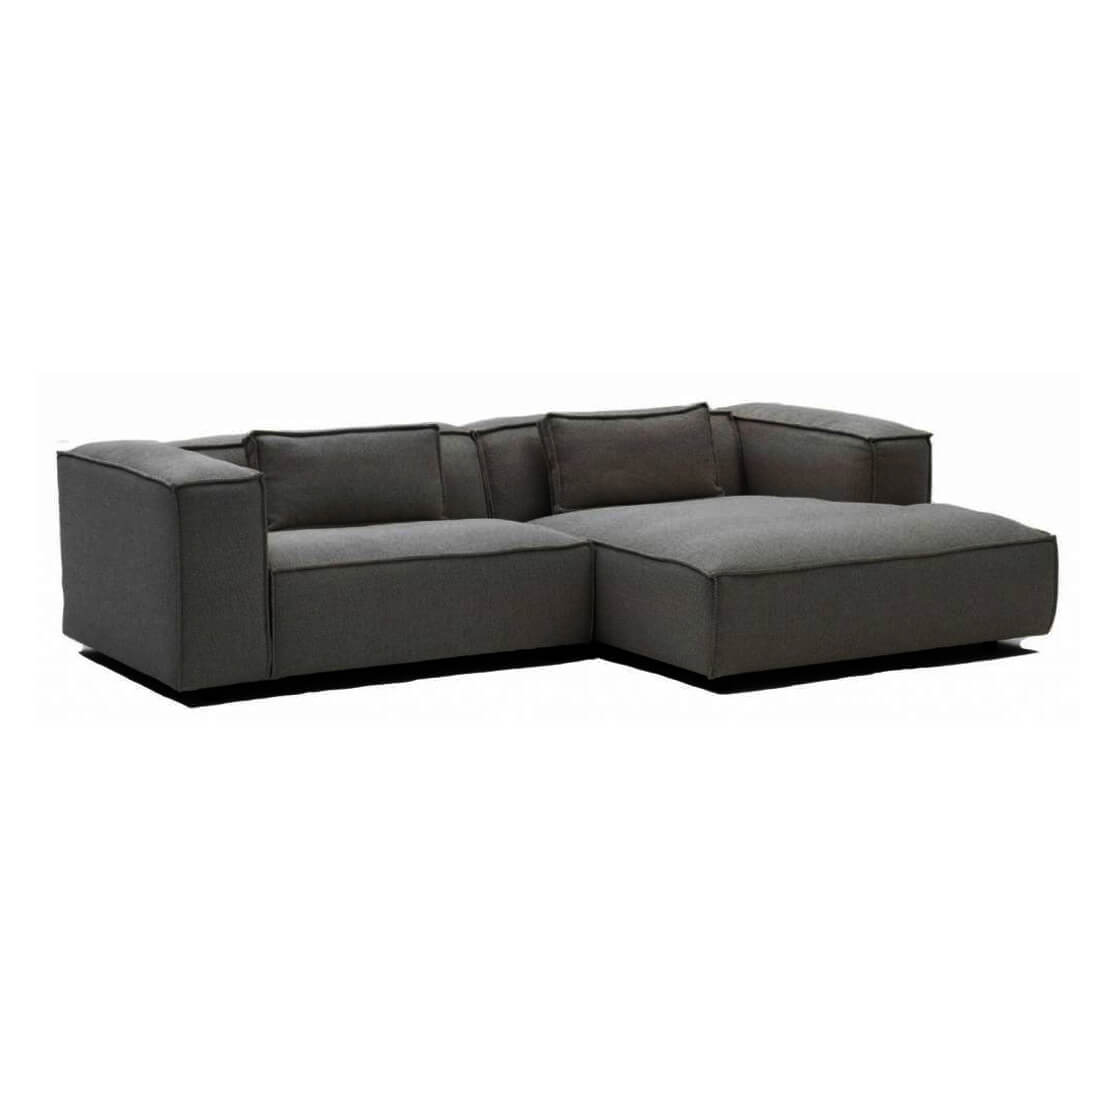 fest amsterdam sofa dunbar most comfortable reclining sectional sofas baci living room couch divian